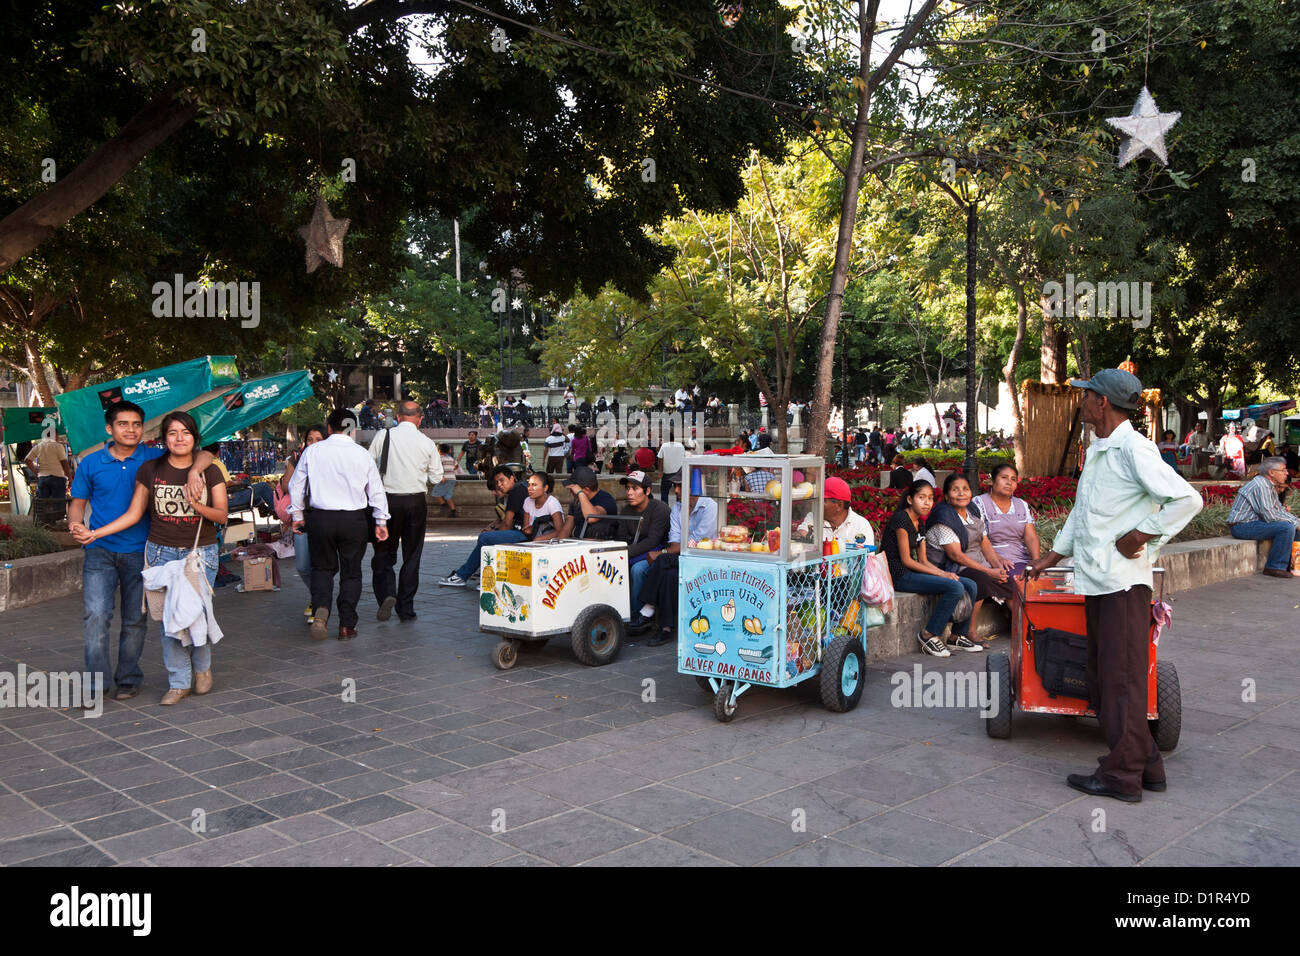 vendors' carts lie in wait for diverse people strolling & sitting under ancient trees in Zocalo at christmastime - Stock Image